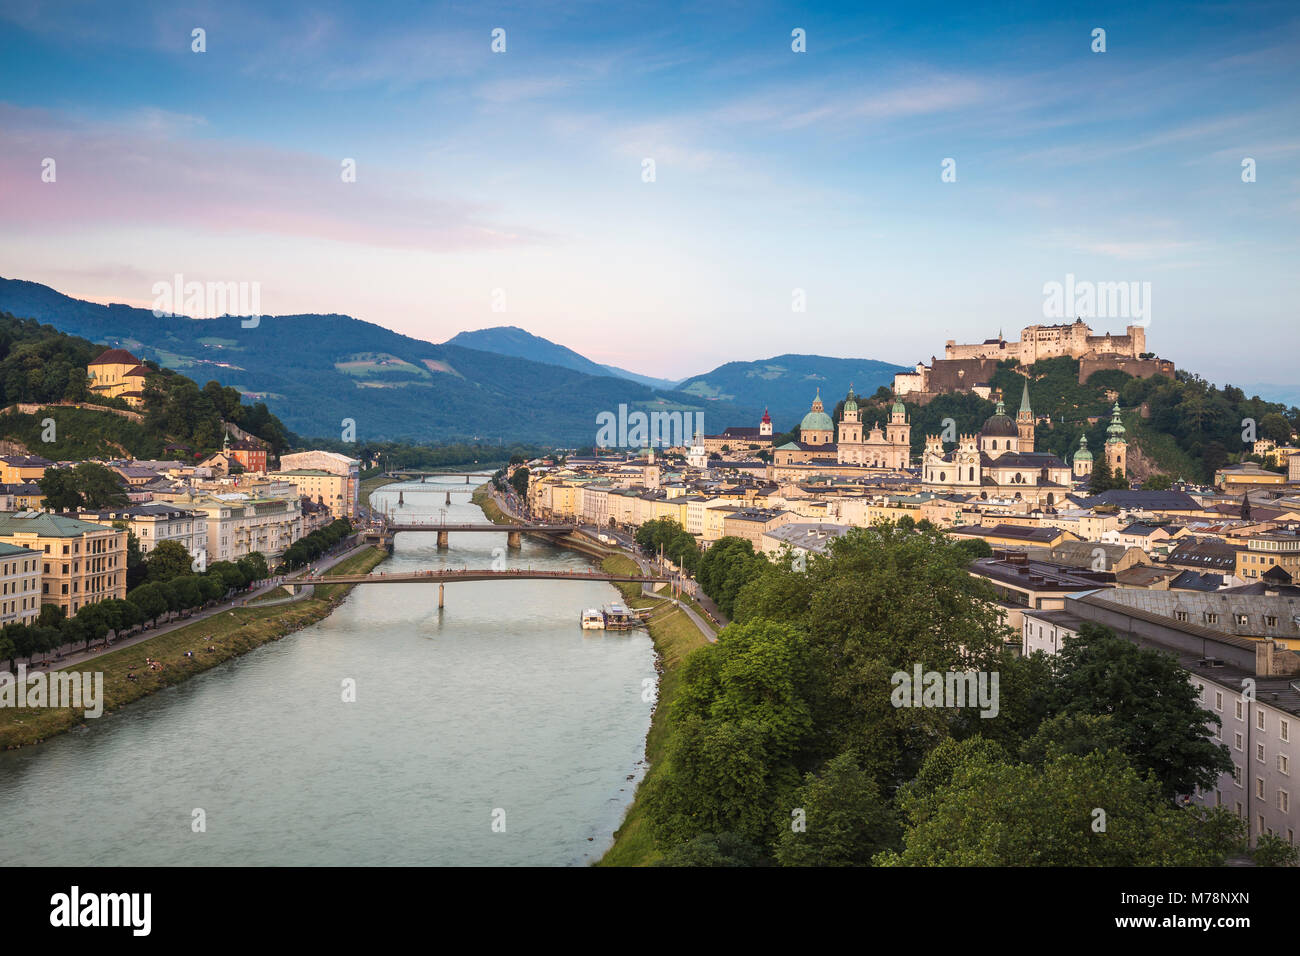 View of Salzach River and Hohensalzburg Castle above The Old City, Salzburg, Austria, Europe - Stock Image